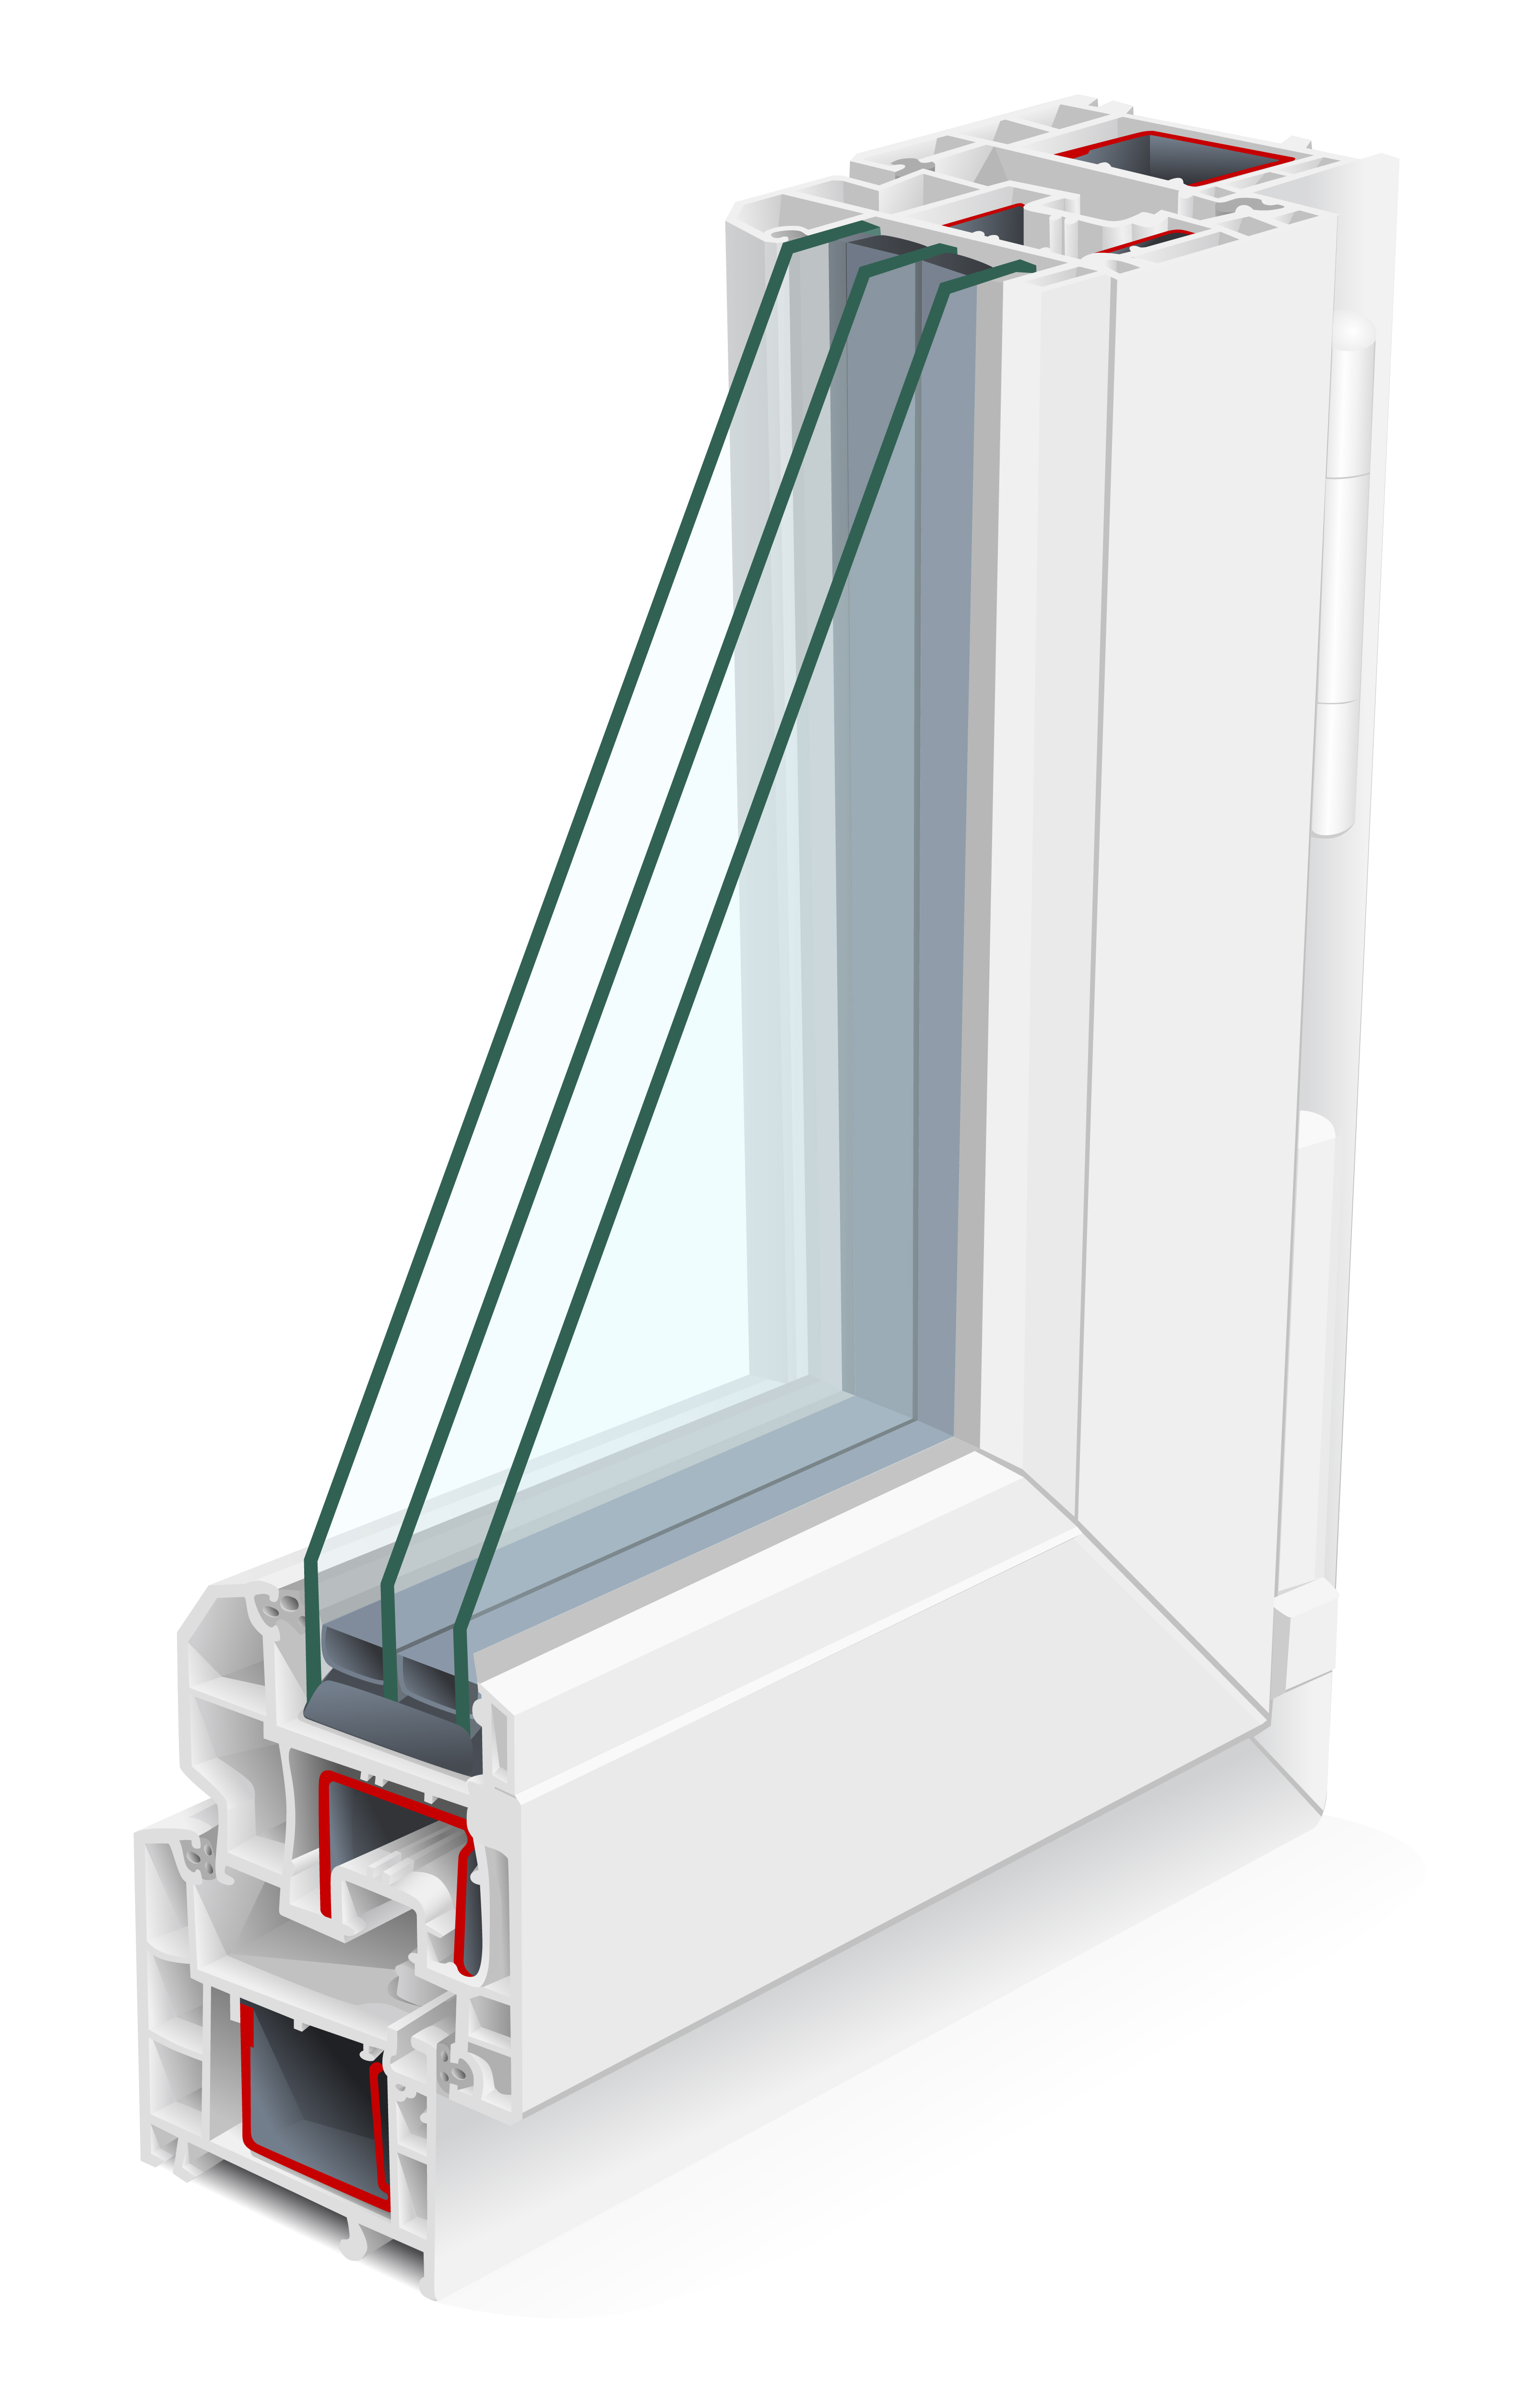 The Double Pane Window Is Made Up Of Two Layers Gl With A E In Between That Filled Type Gas These Windows Are Huge Advantage To